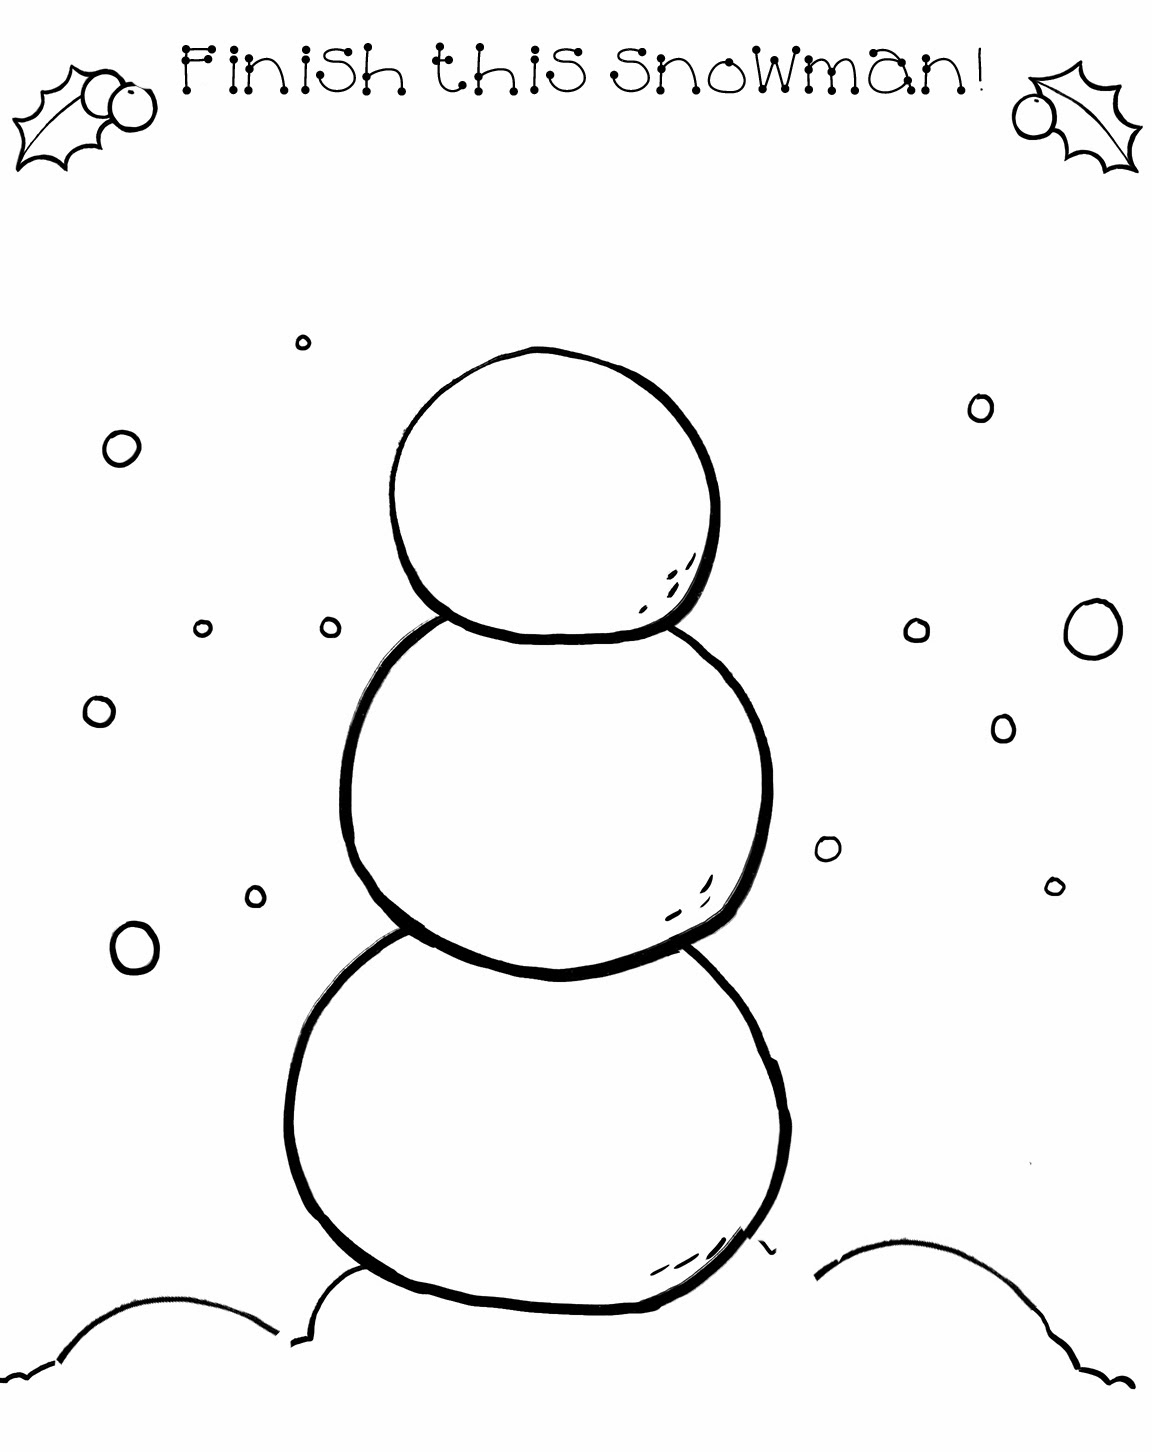 Workbooks wishes and feelings worksheets for children : Baby potatoes: Draw a Snowman